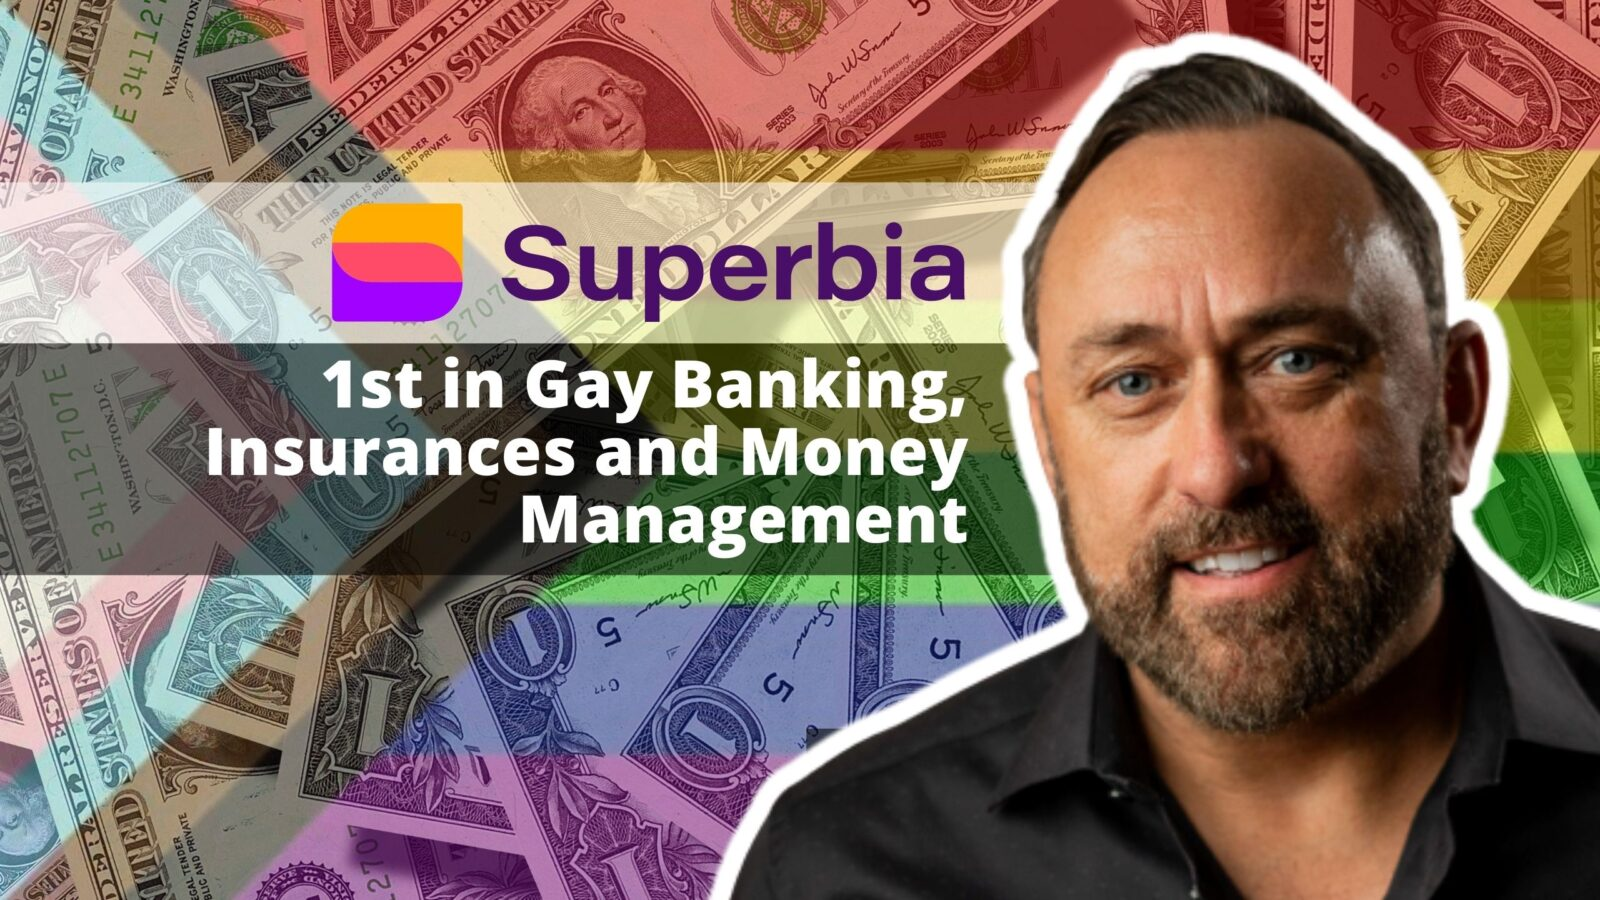 Superbia Services Myles Myers LGBTQ Credit Union Gay Entrepreneur lgbt banking personal business (2)